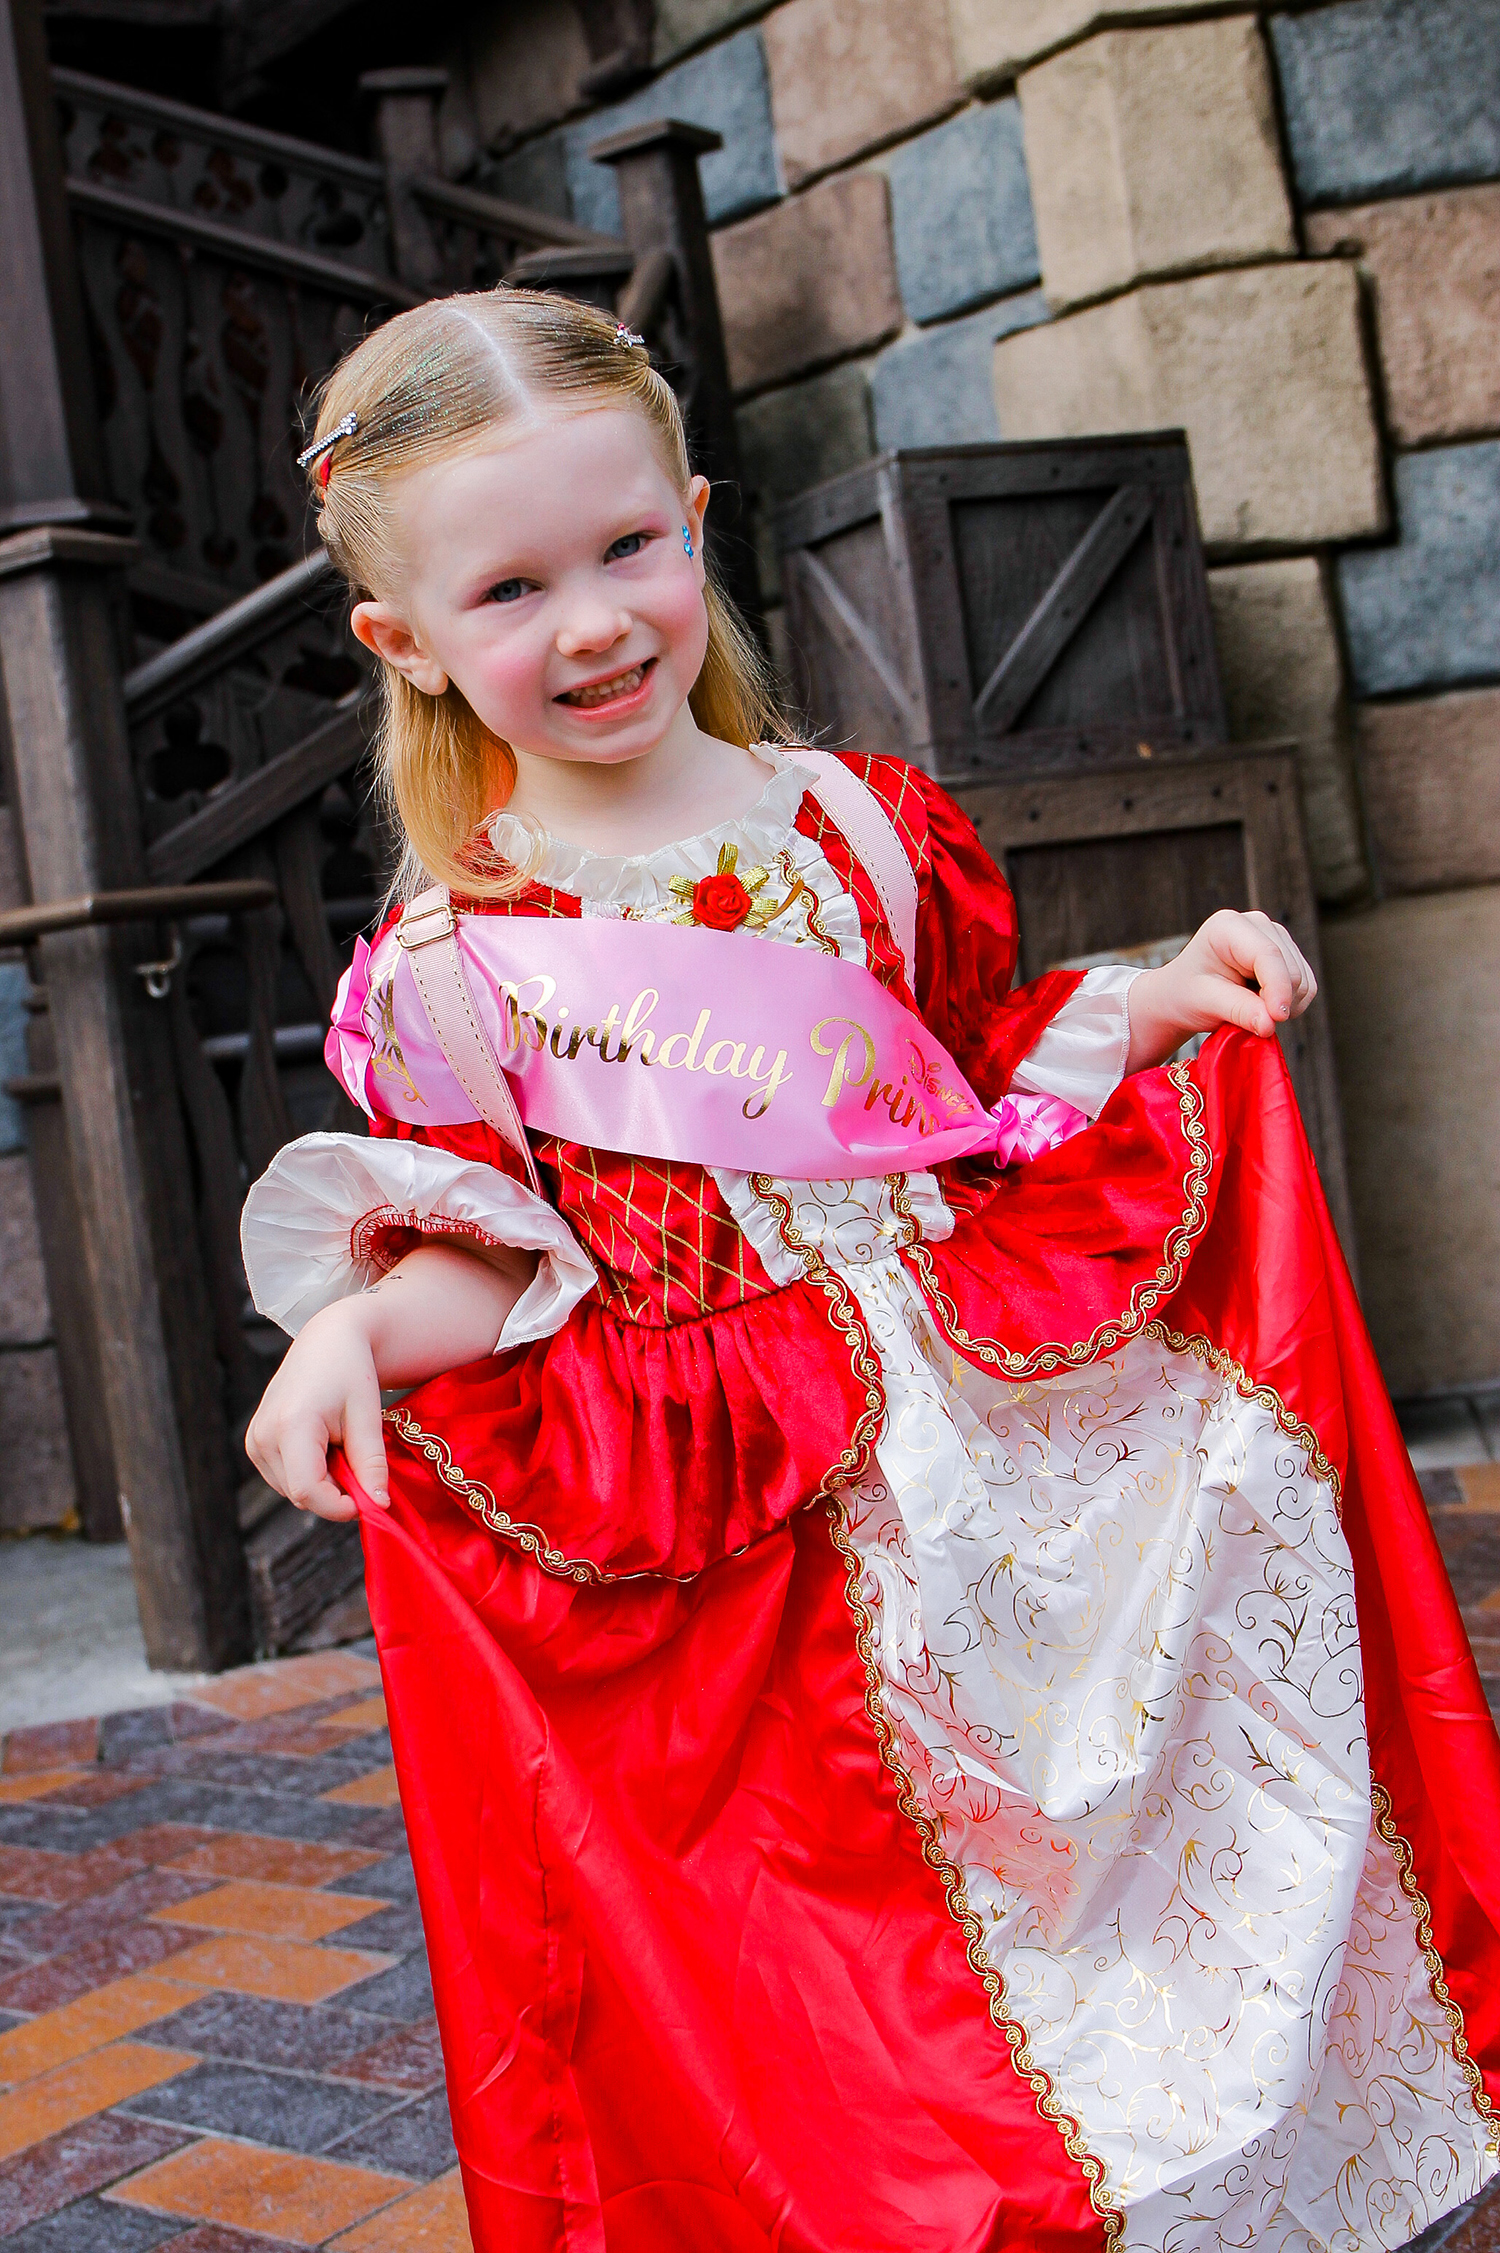 Disneyland Birthday: Want to visit the Bibbidi Bobbidi Boutique for a birthday? These tips to do it without breaking the bank are a must read!